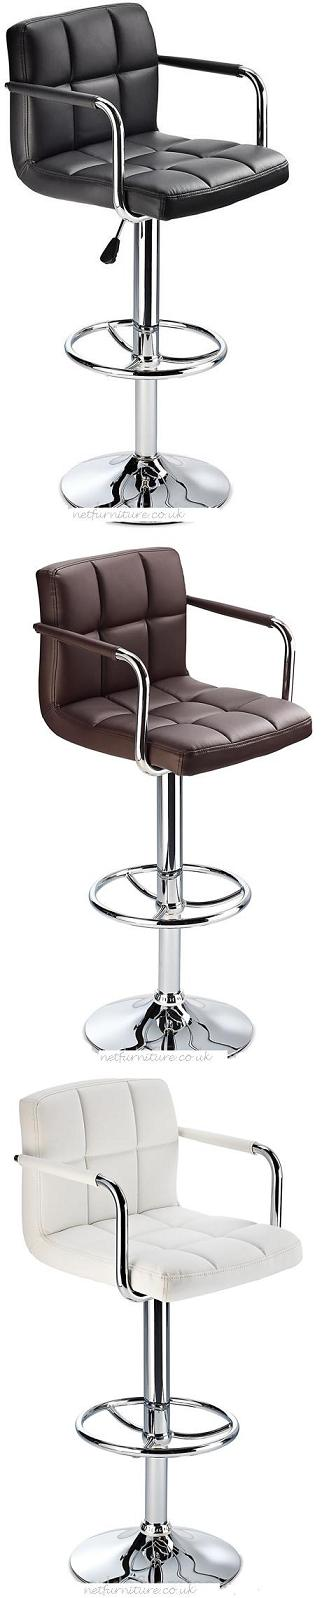 Landia Bar Stool with Arms and Back Rest  Adjustable Height